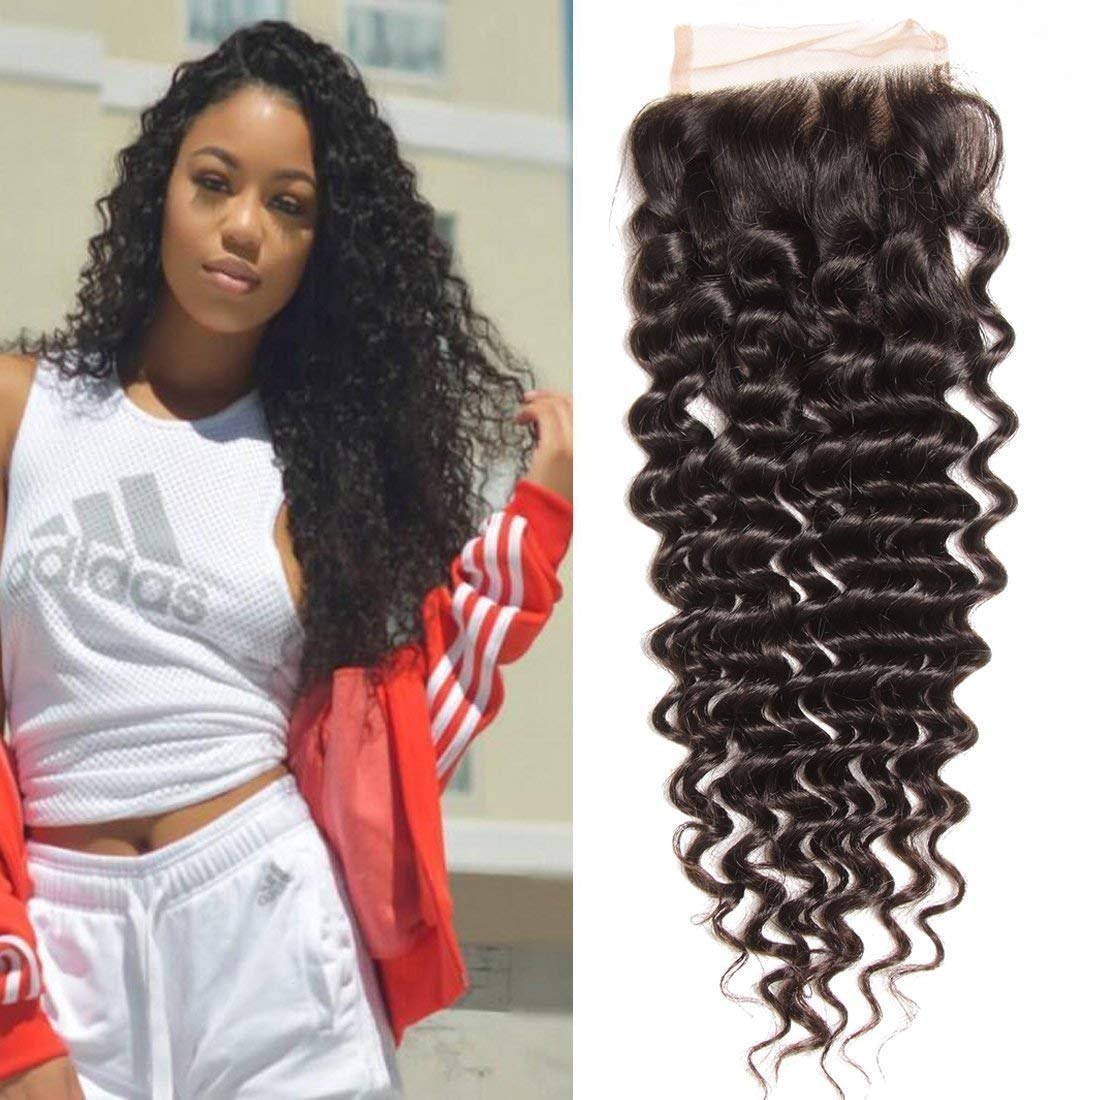 LETMESHINE JERRY CURLY 4*4 OR 5*5 LACE CLOSURE THREE PART MIDDLE PART FREE PART 100% VIRGIN HUMAN HAIR NATURAL COLOR - LetMeShine Hair